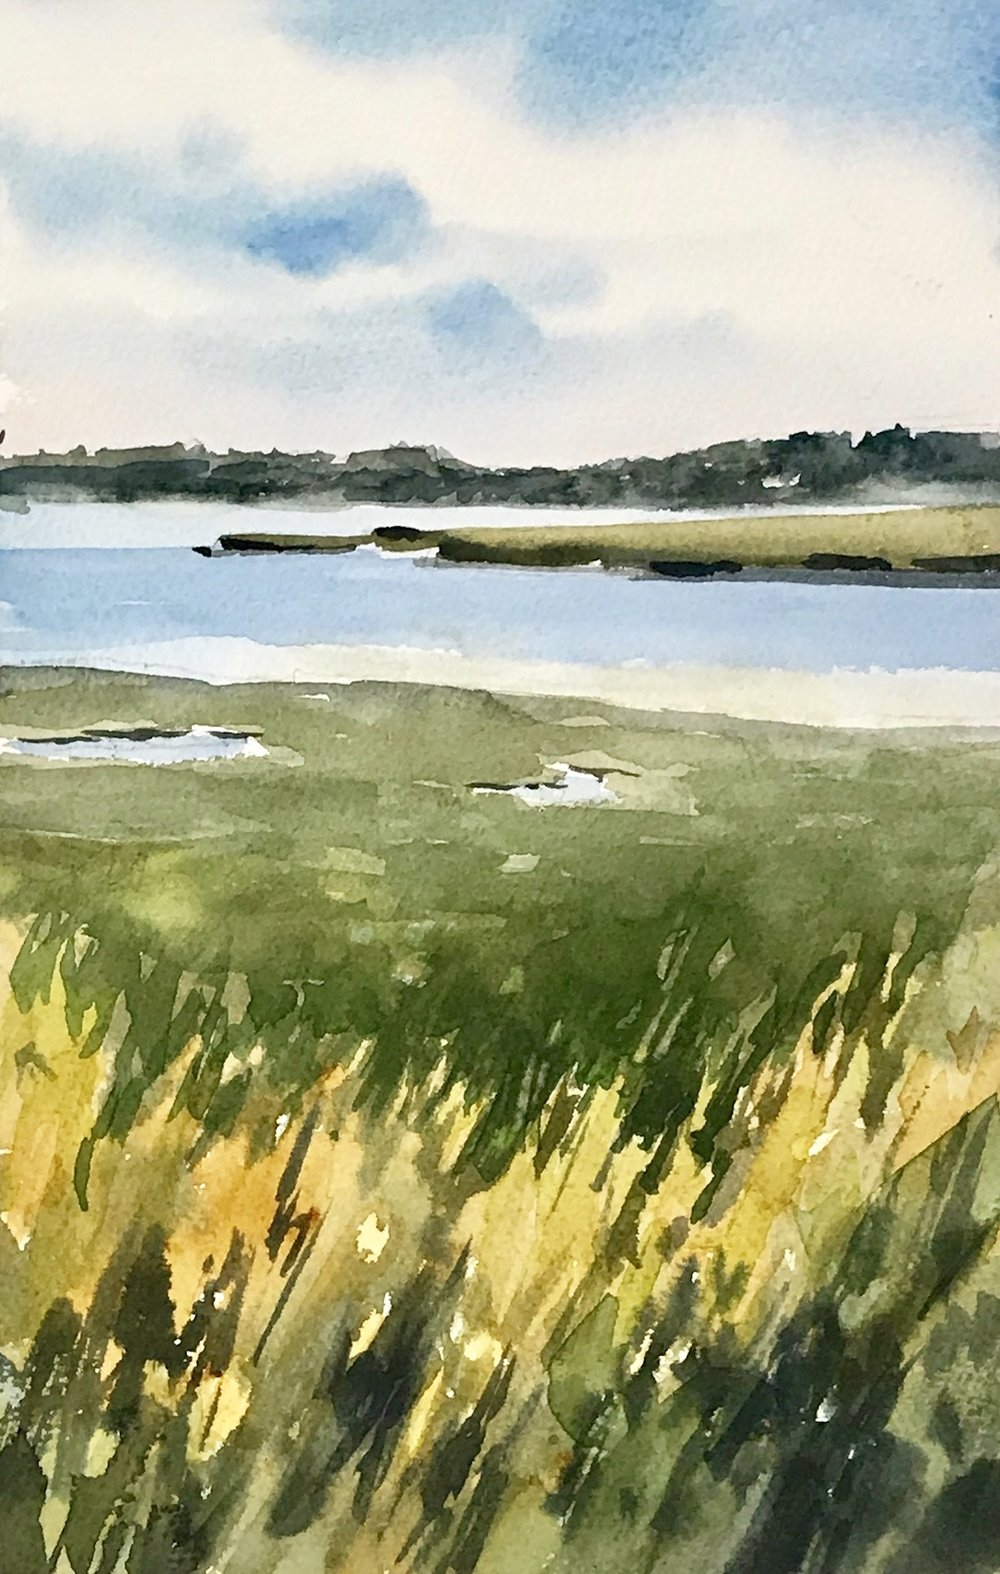 For my second painting, I moved just a few feet away and changed my format from a panoramic to a vertical emphasis. The marsh grasses seemed to be on fire and sparkled against the blue water